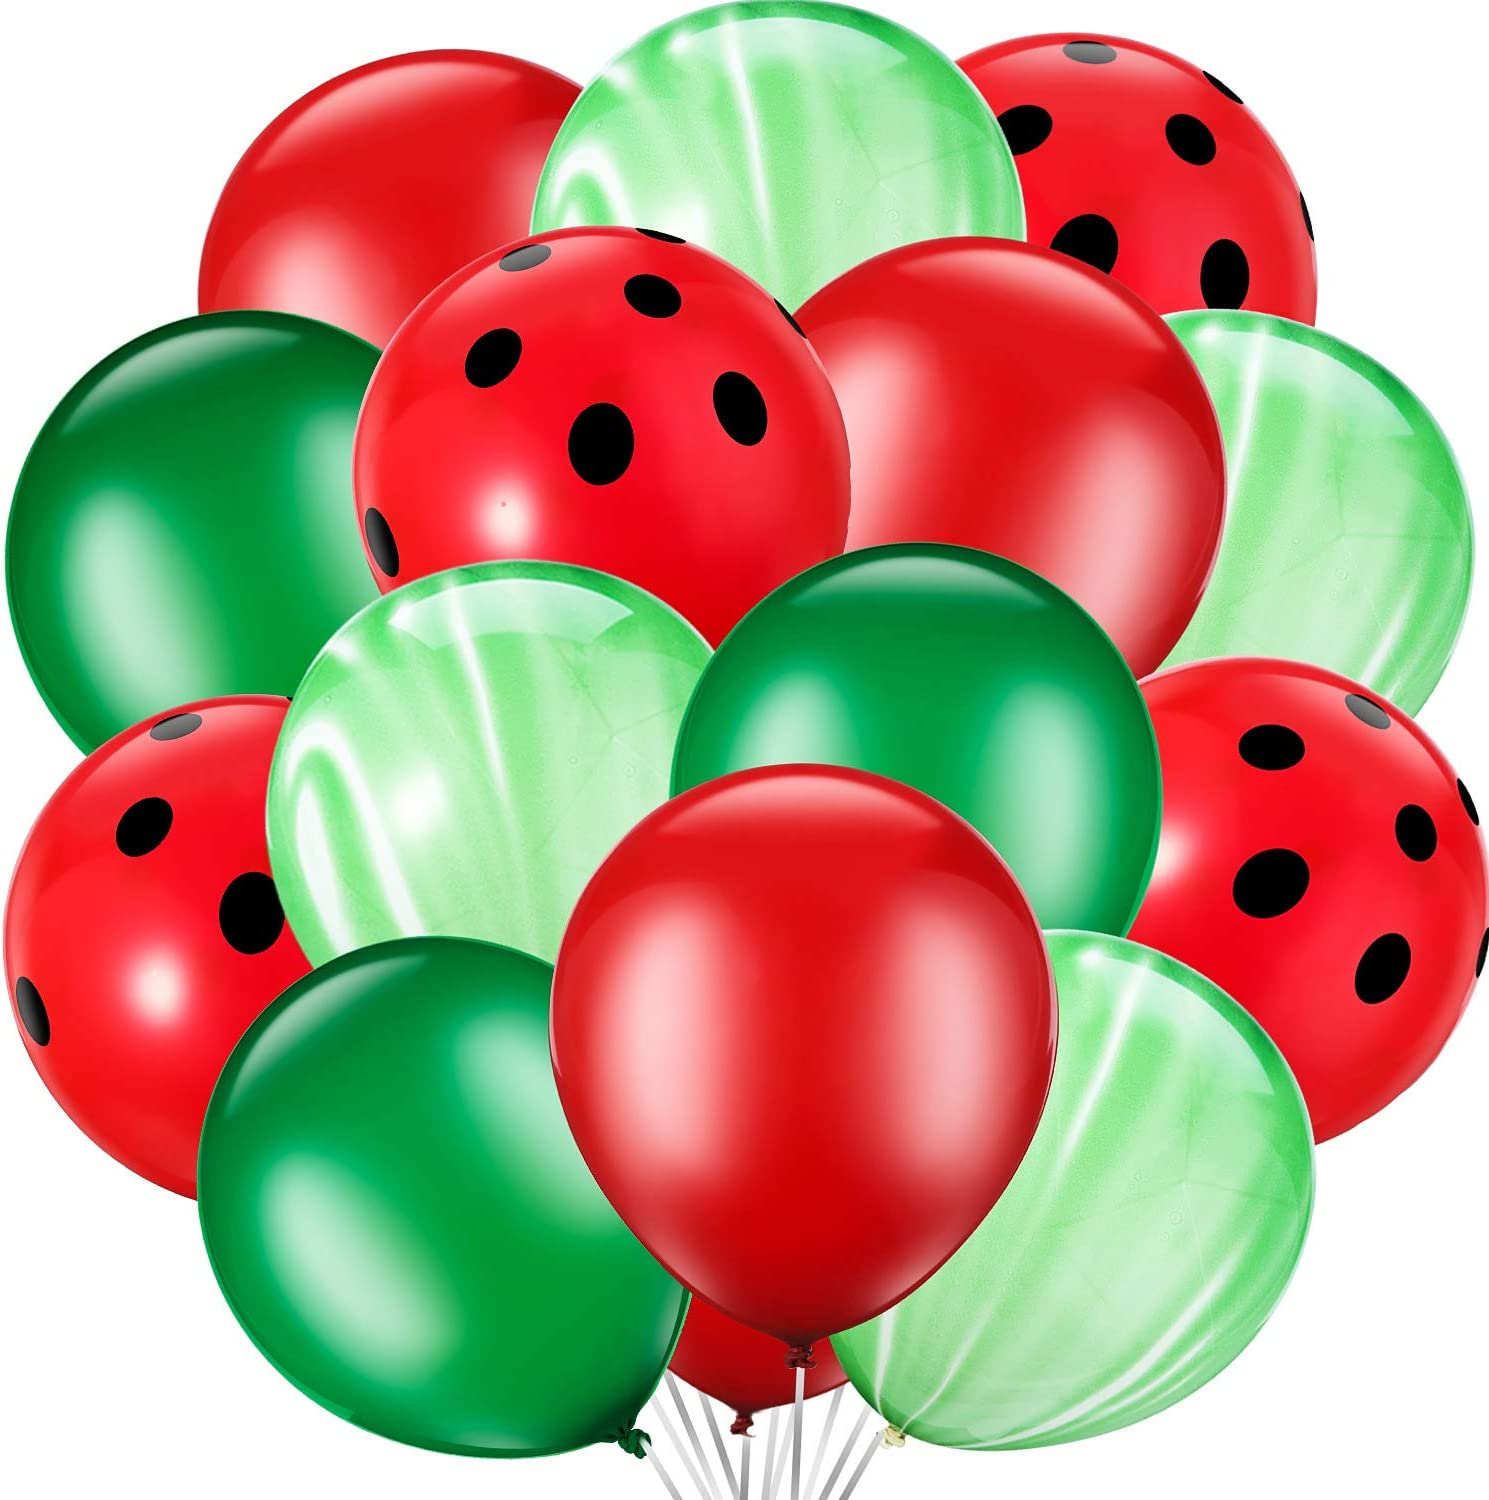 17 Outdoor Display Balloons Watermelon Red Birthday Balloons Baby Shower Party Supplies Metallic Pearl Latex HUGE balloons